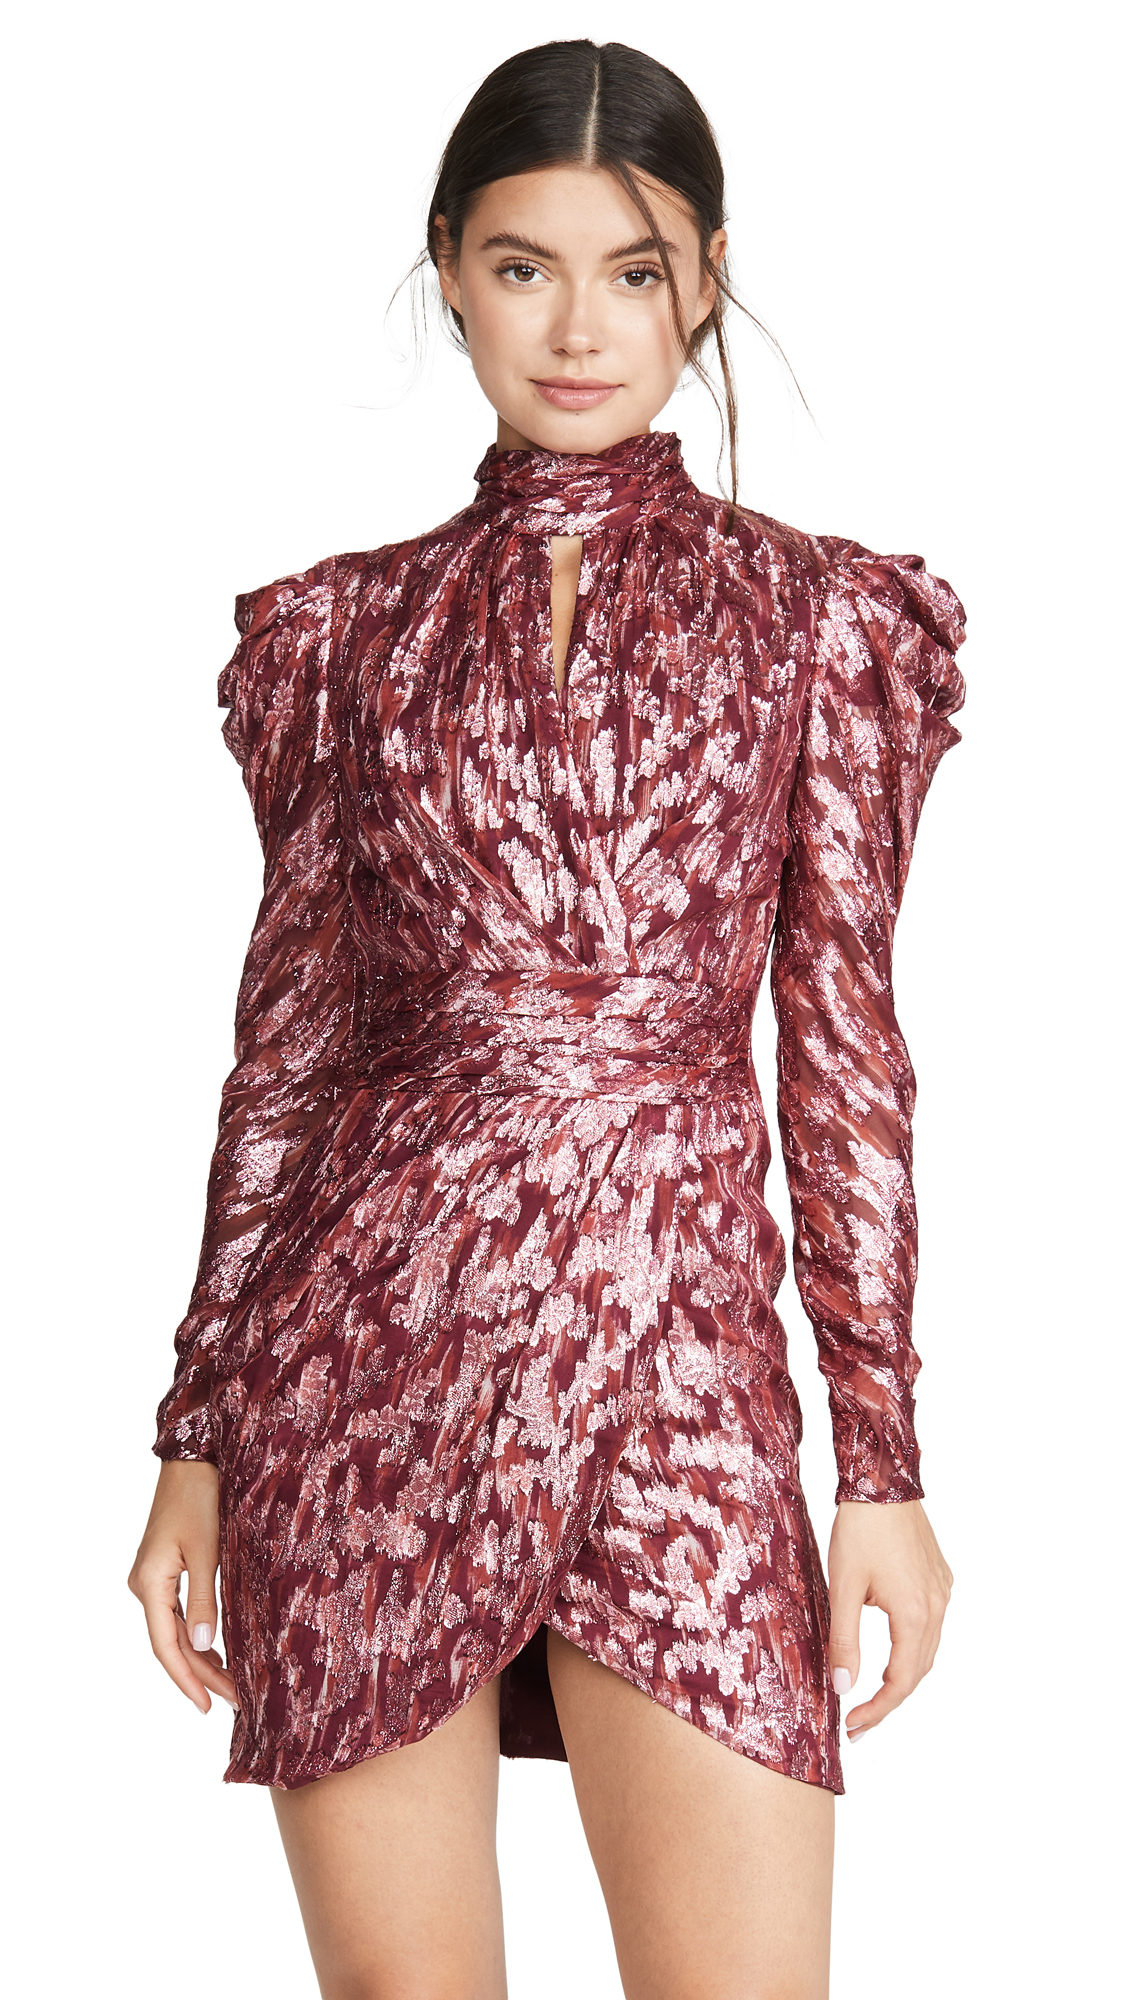 Jonathan Simkhai Metallic Vine Mock Neck Dress – 50% Off Sale